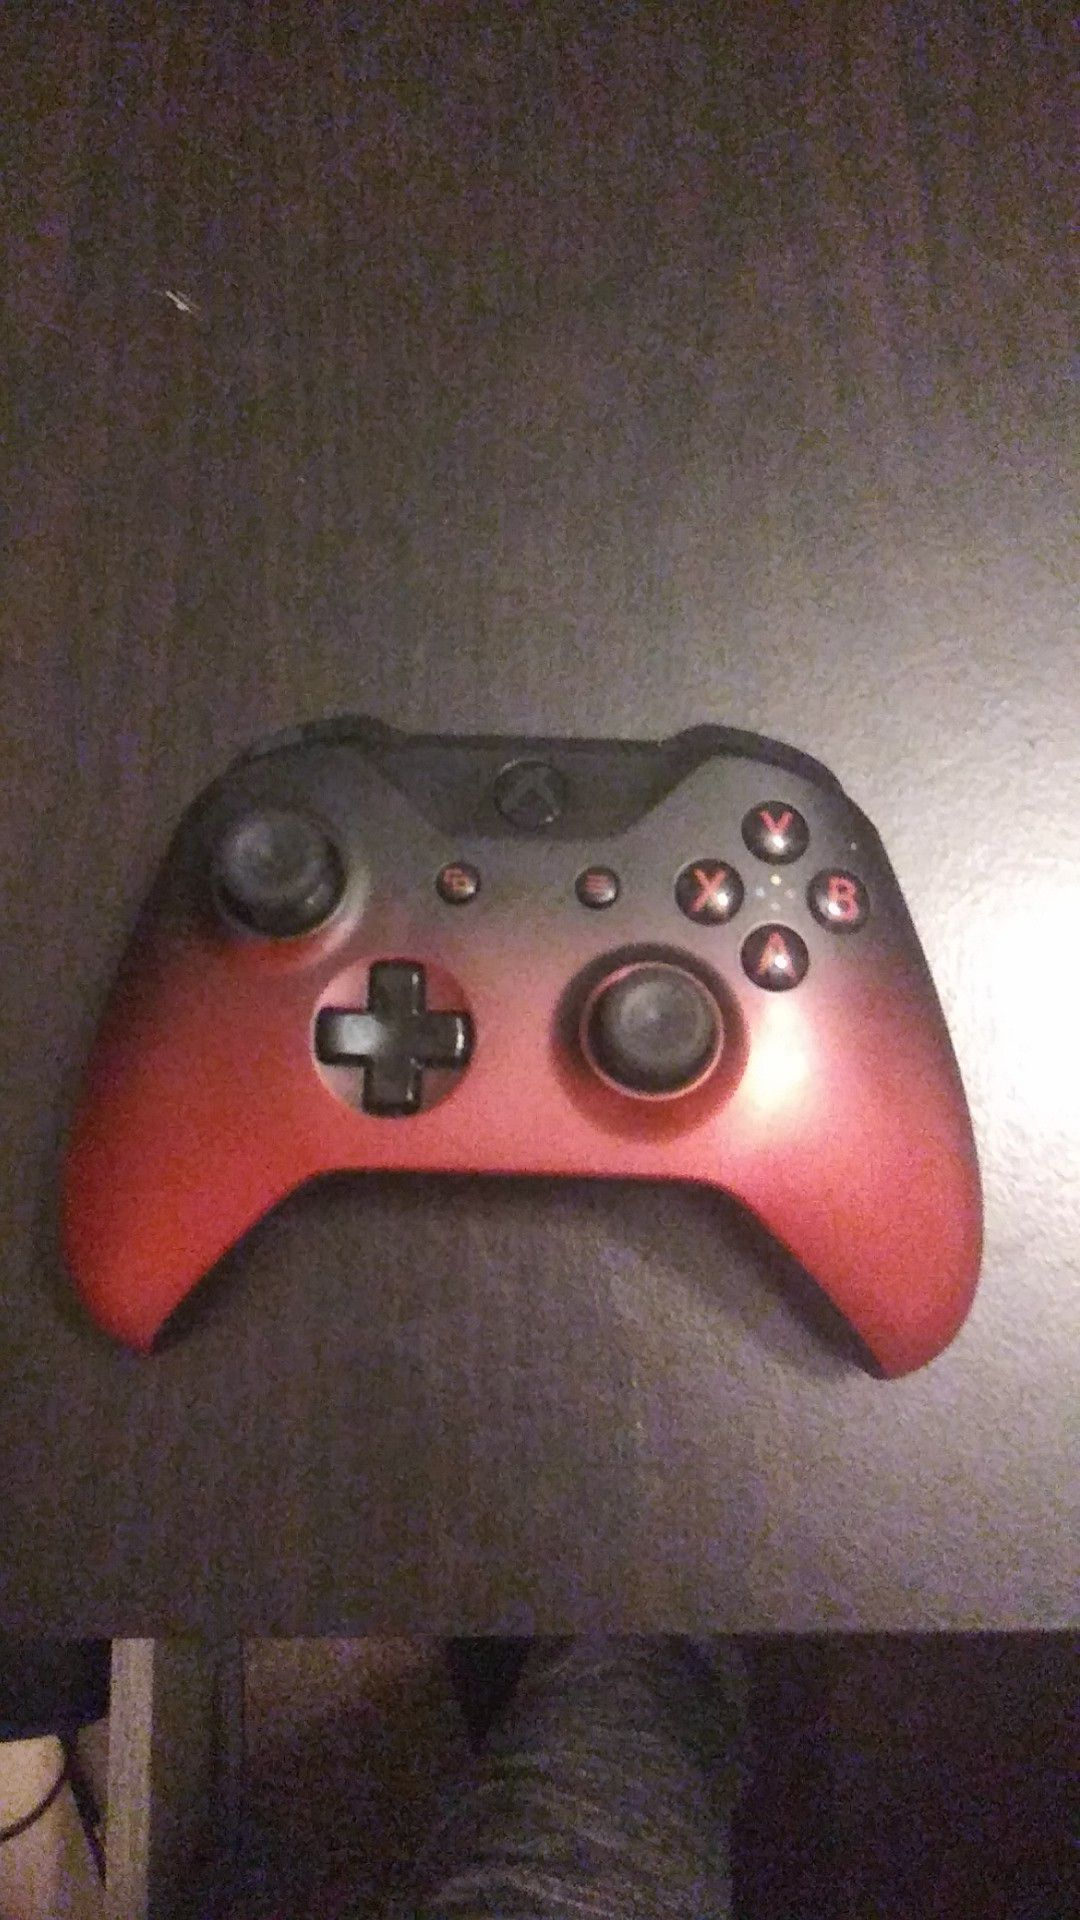 Xbox one controller lava red and black